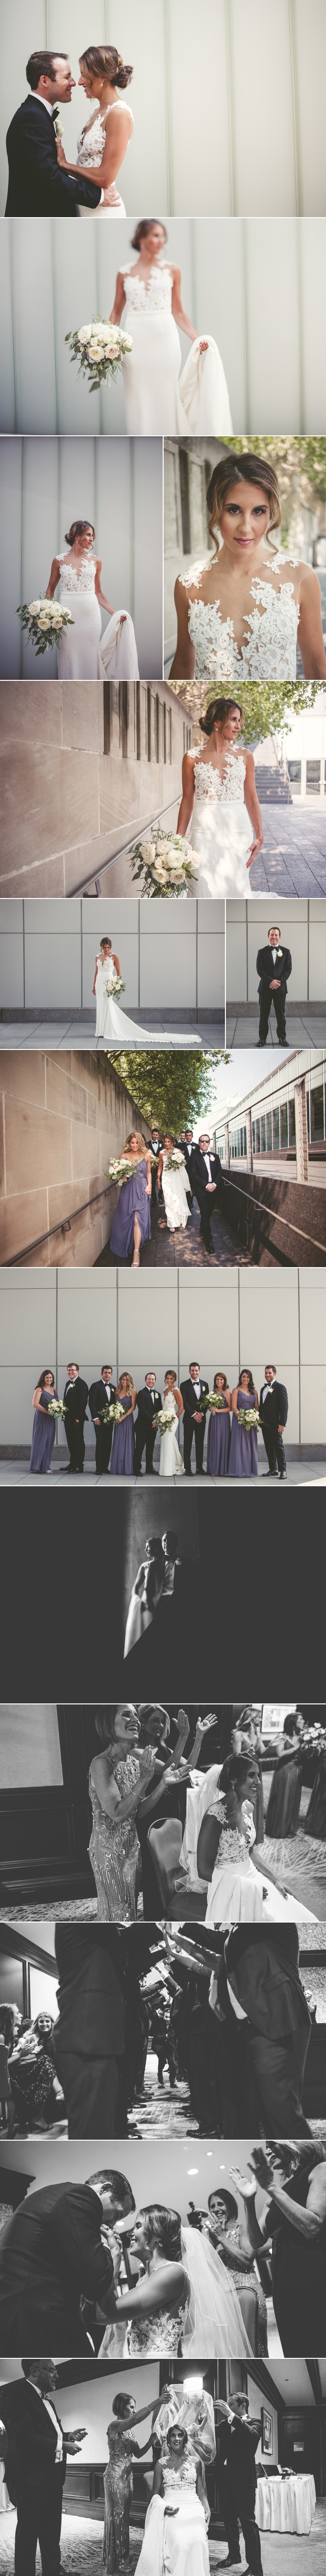 jason_domingues_photography_best_kansas_city_wedding_photographer_jewish_intercontinental_hotel_0003.JPG